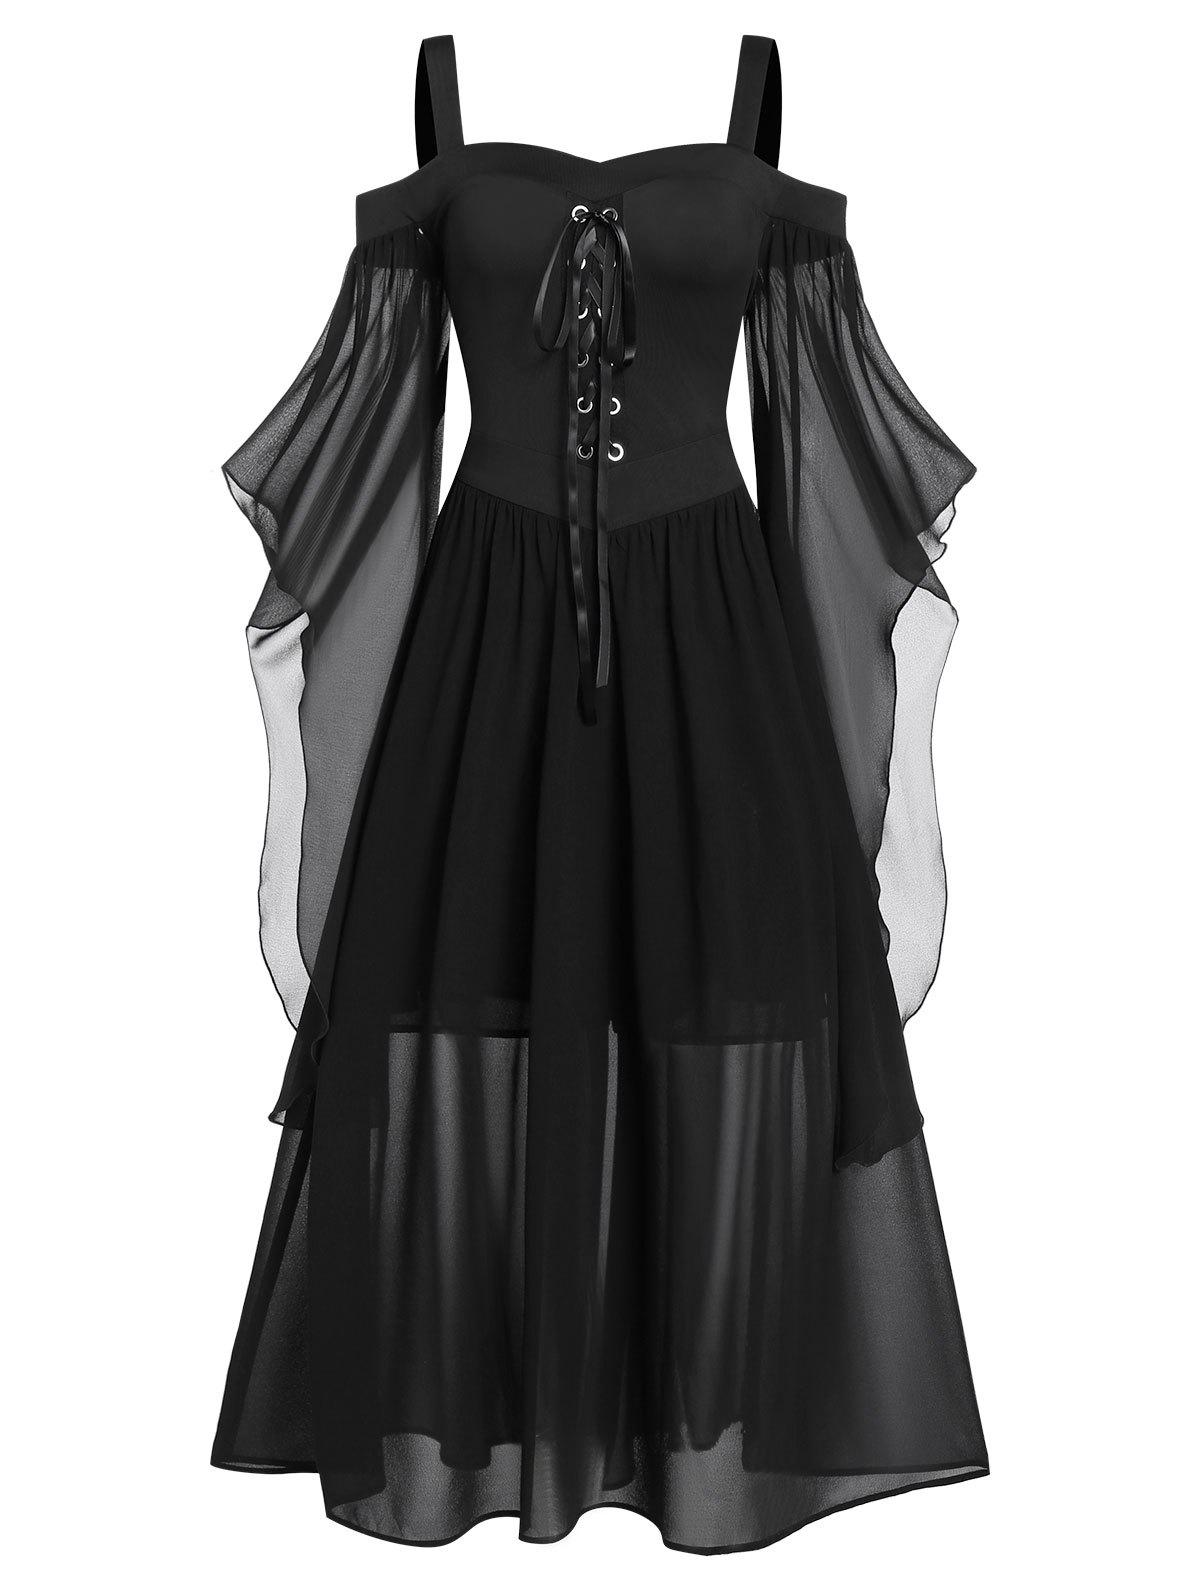 Store Plus Size Butterfly Sleeve Lace Up Gothic Halloween Dress